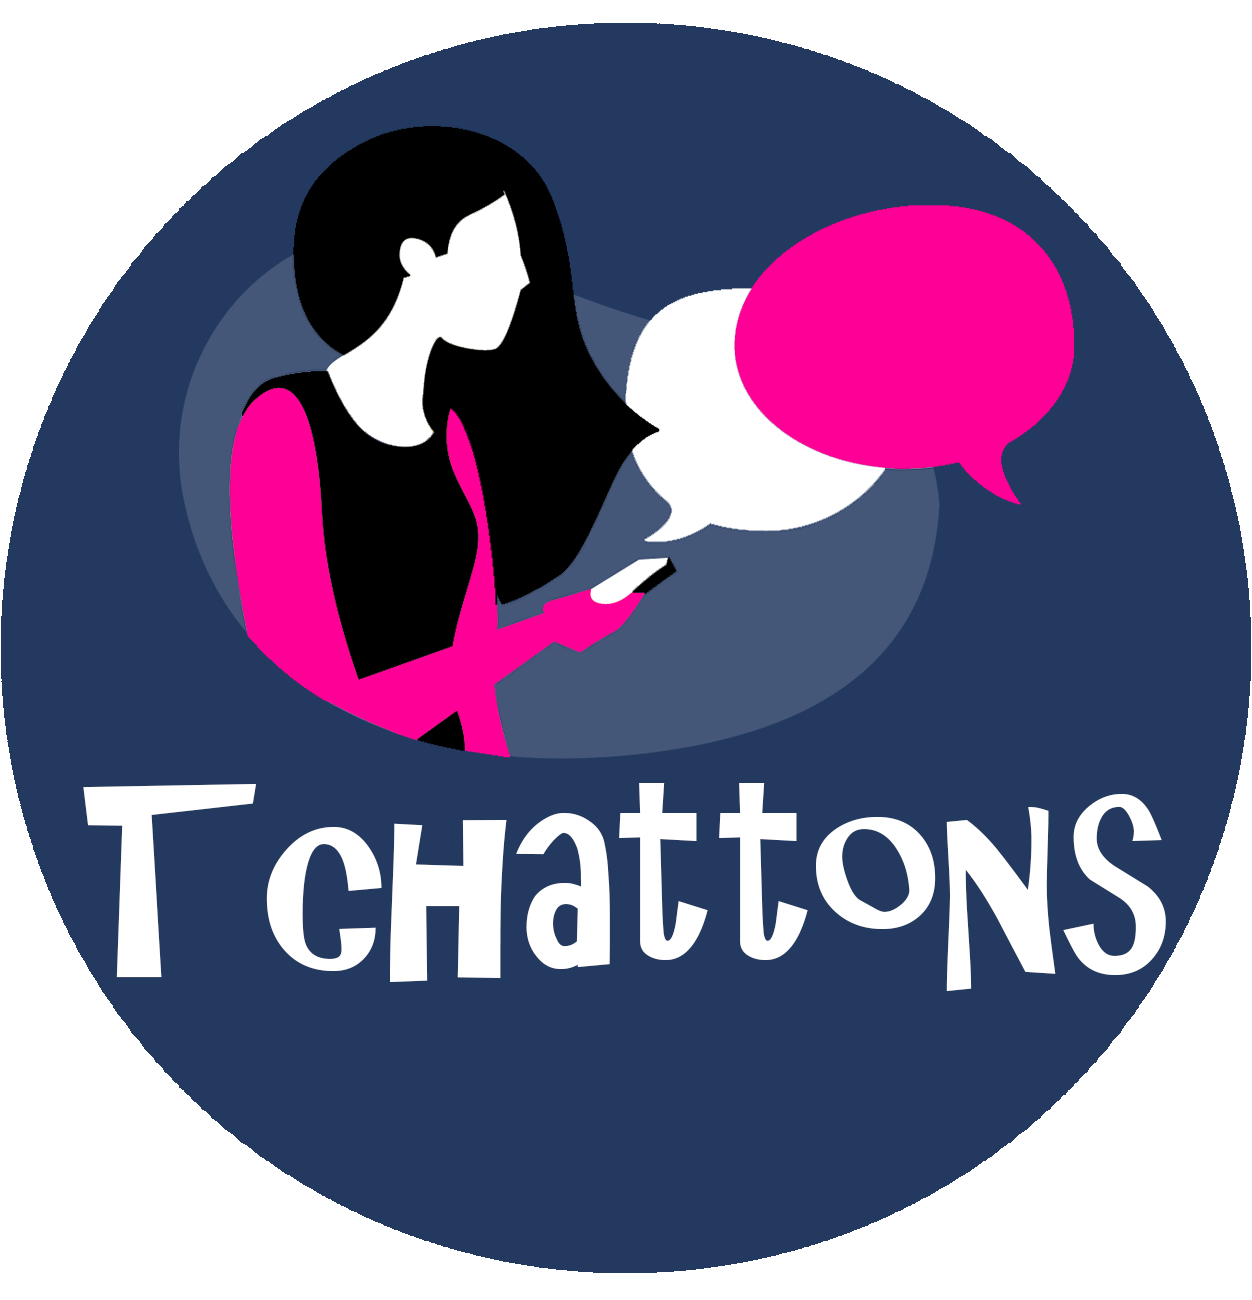 Tchattons